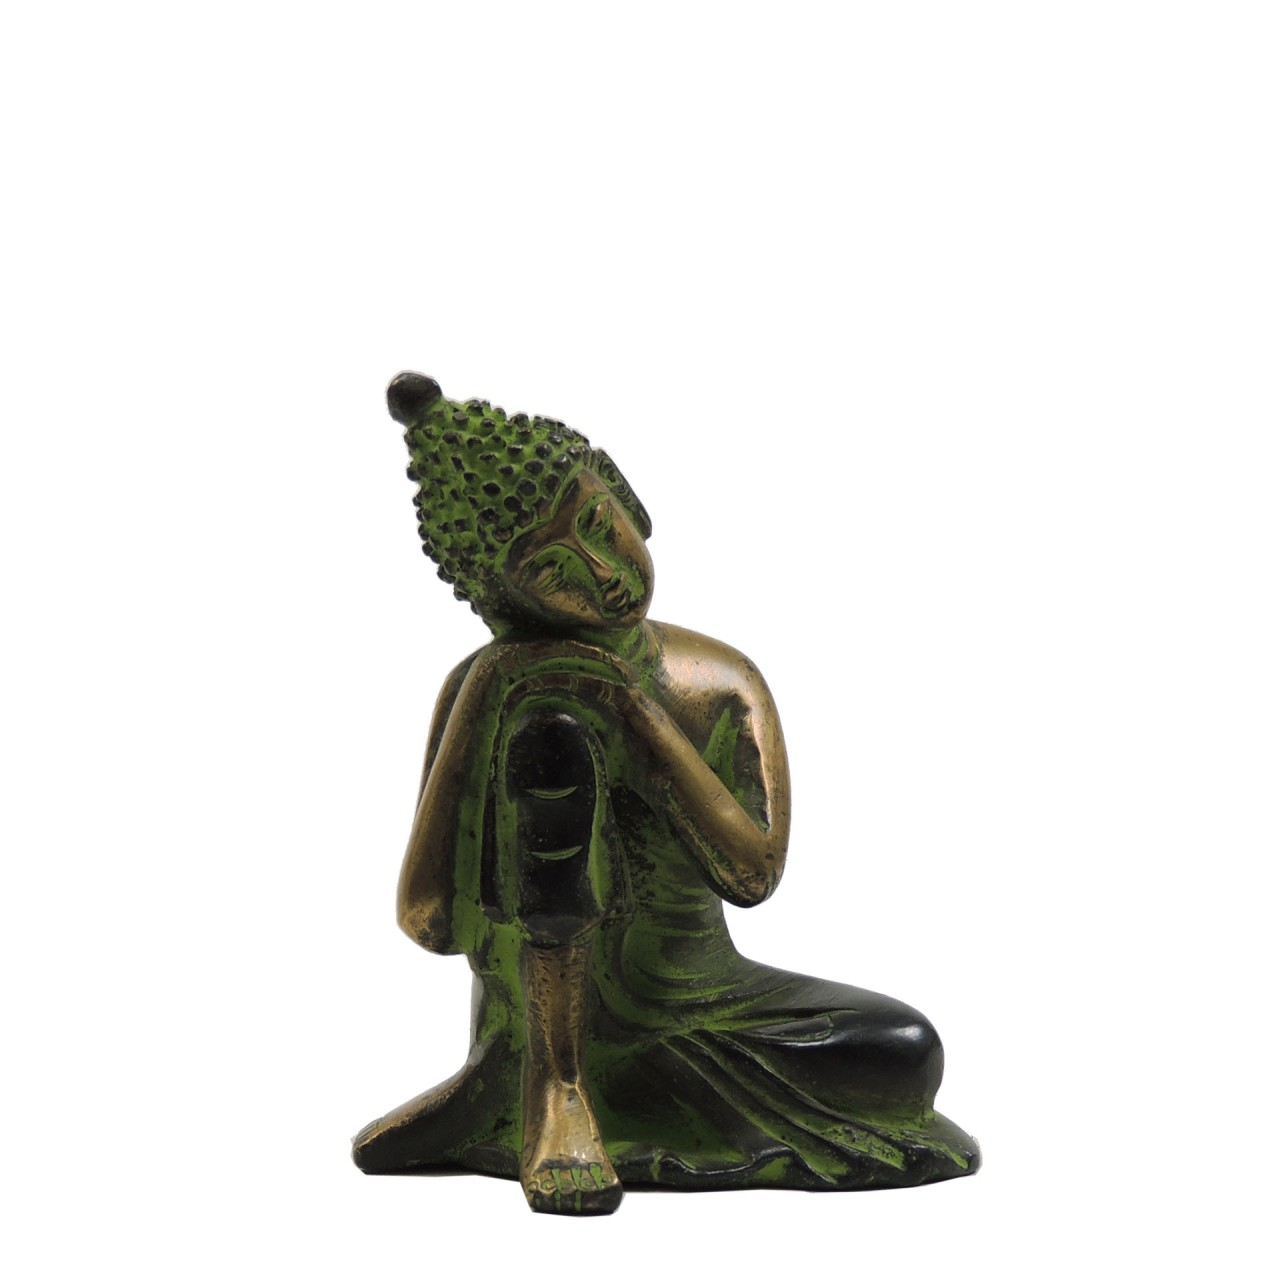 "Messingfigur ""Sleeping Buddha"" ca. 9 cm - goldfarben/braun/green Patina - Handwerk Indien"